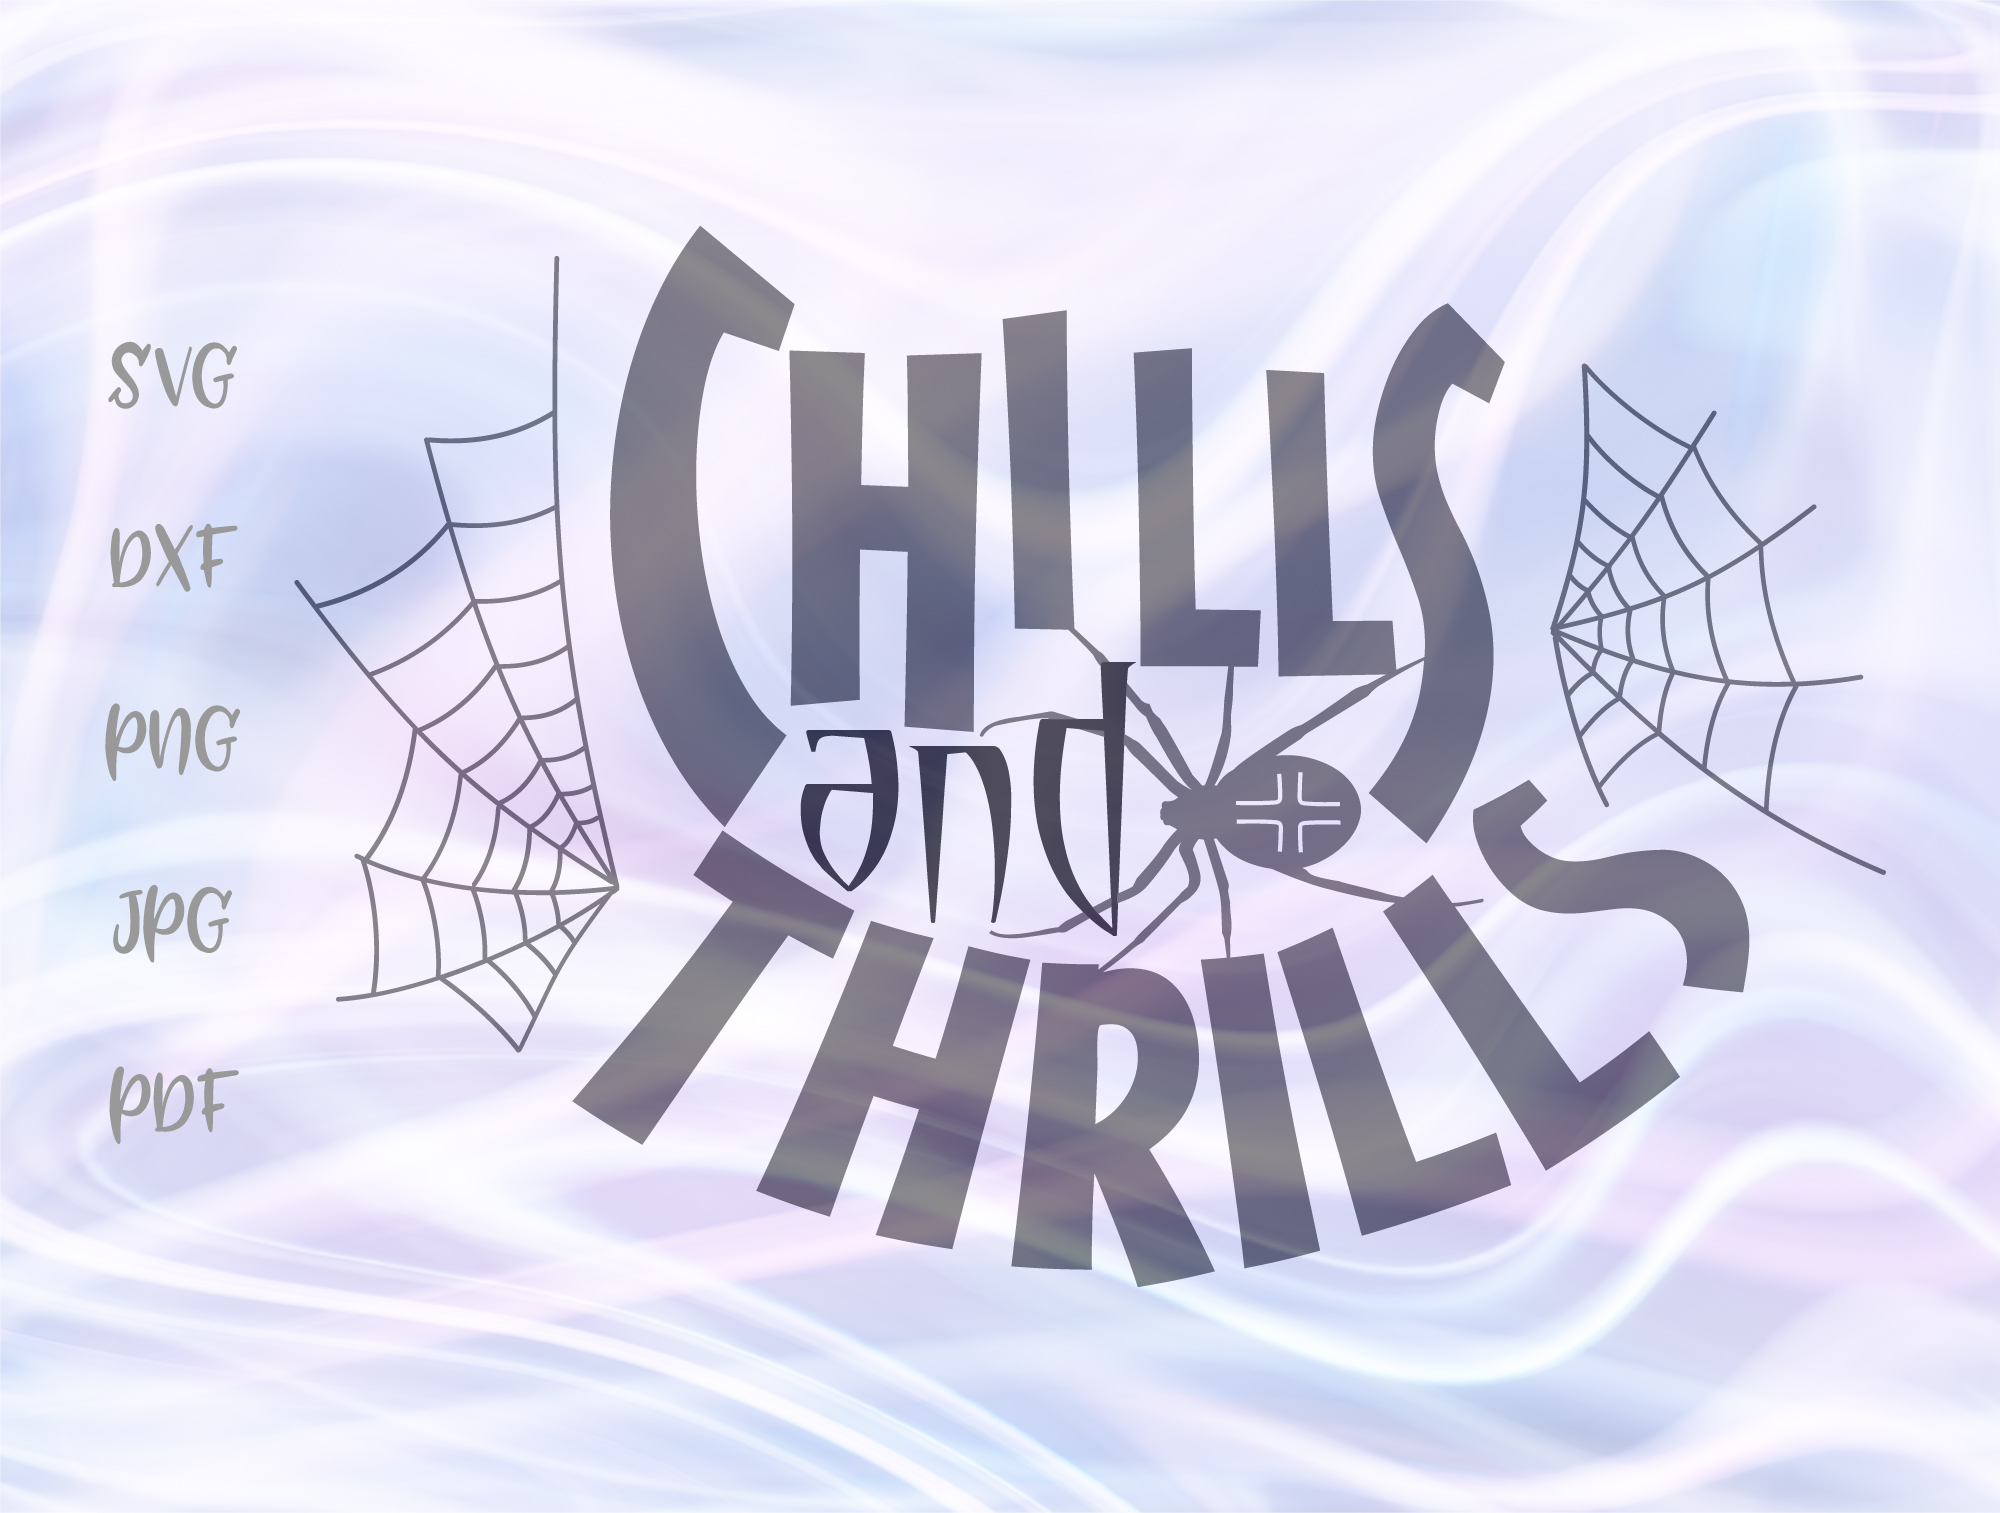 Happy Halloween Chills And Thrills Graphic By Digitals By Hanna